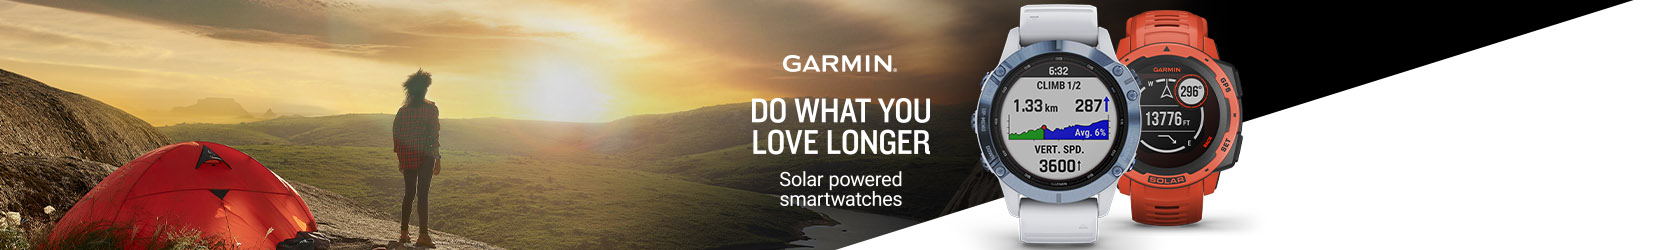 Shop New Garmin Solar watches